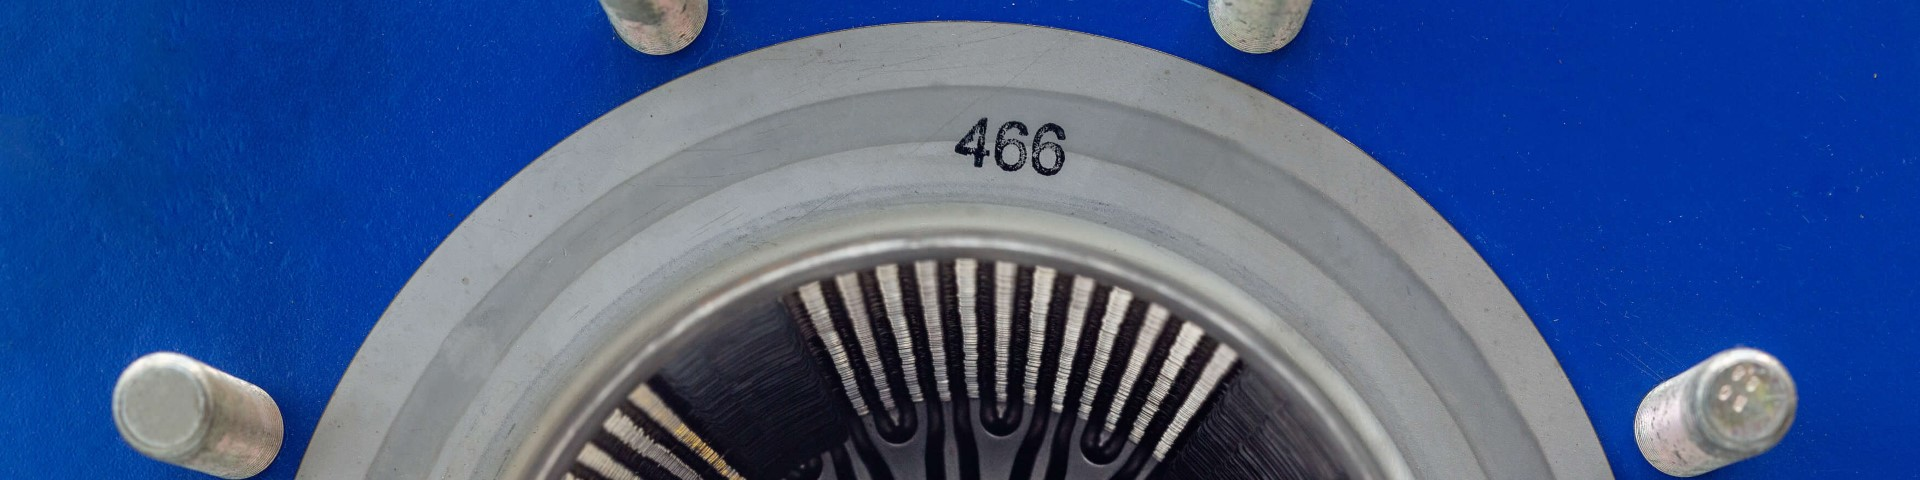 port hole on a plate heat exchanger close-up 1920x480